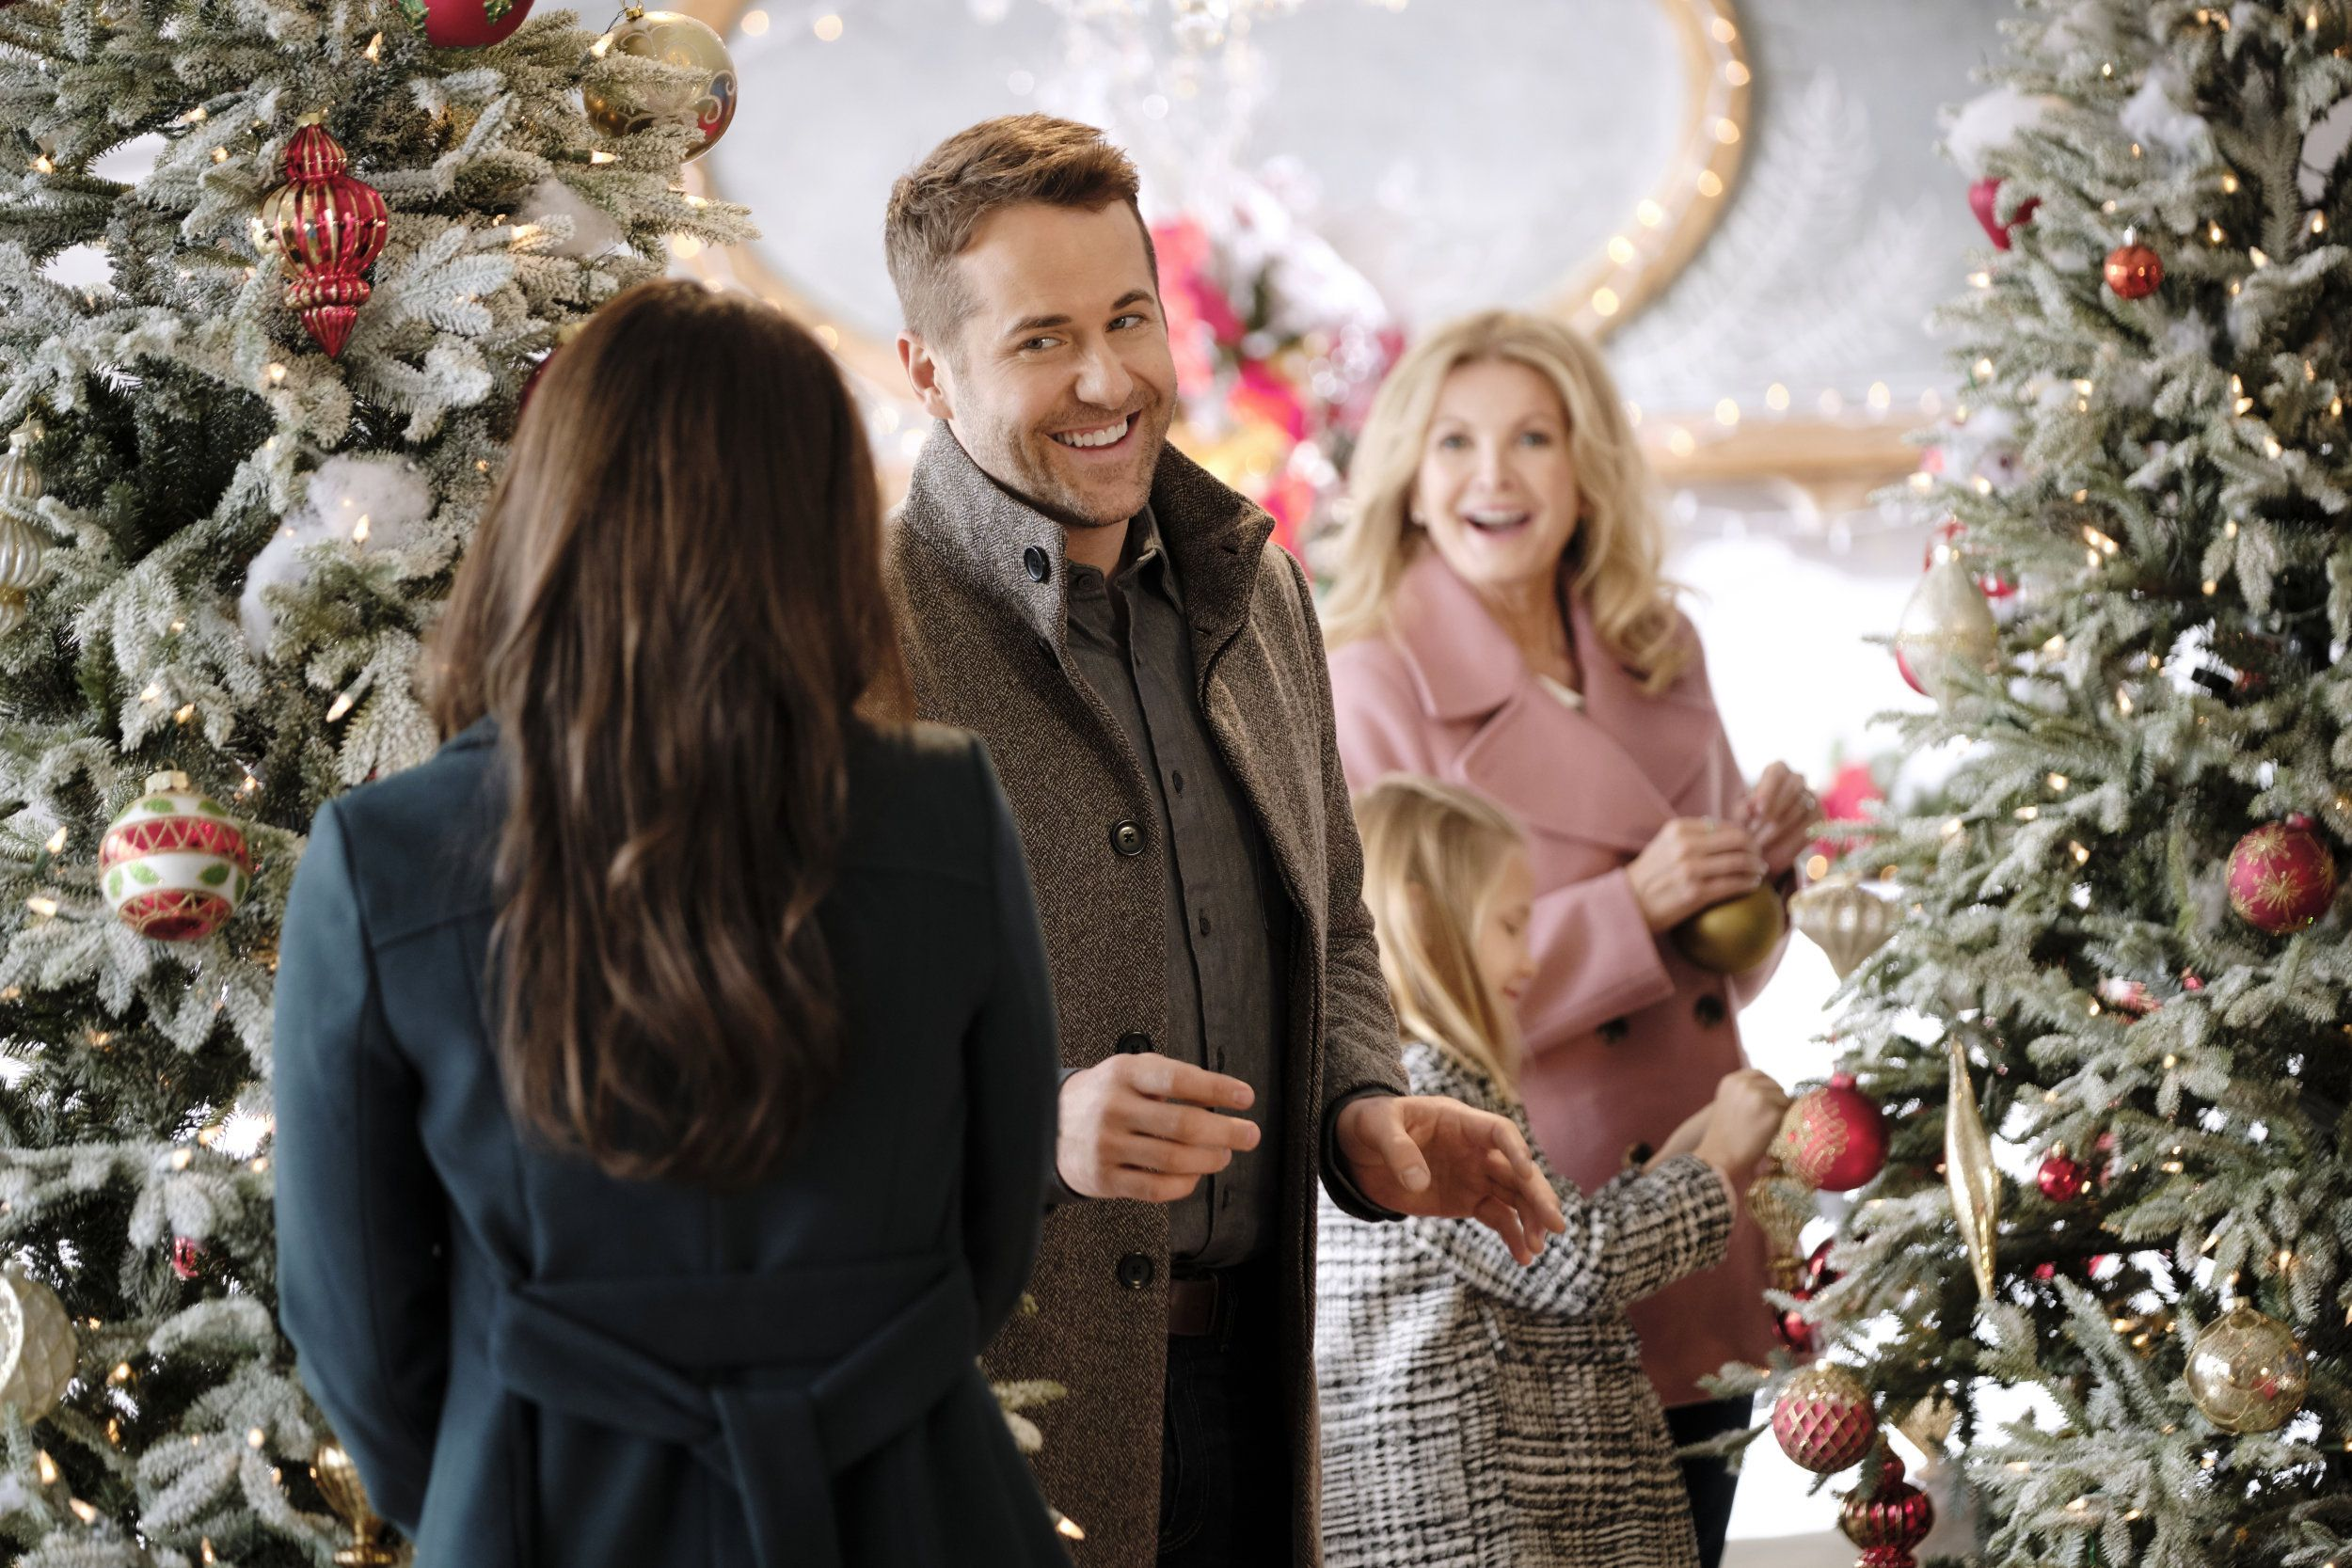 Check out photos from the Hallmark Channel, movie